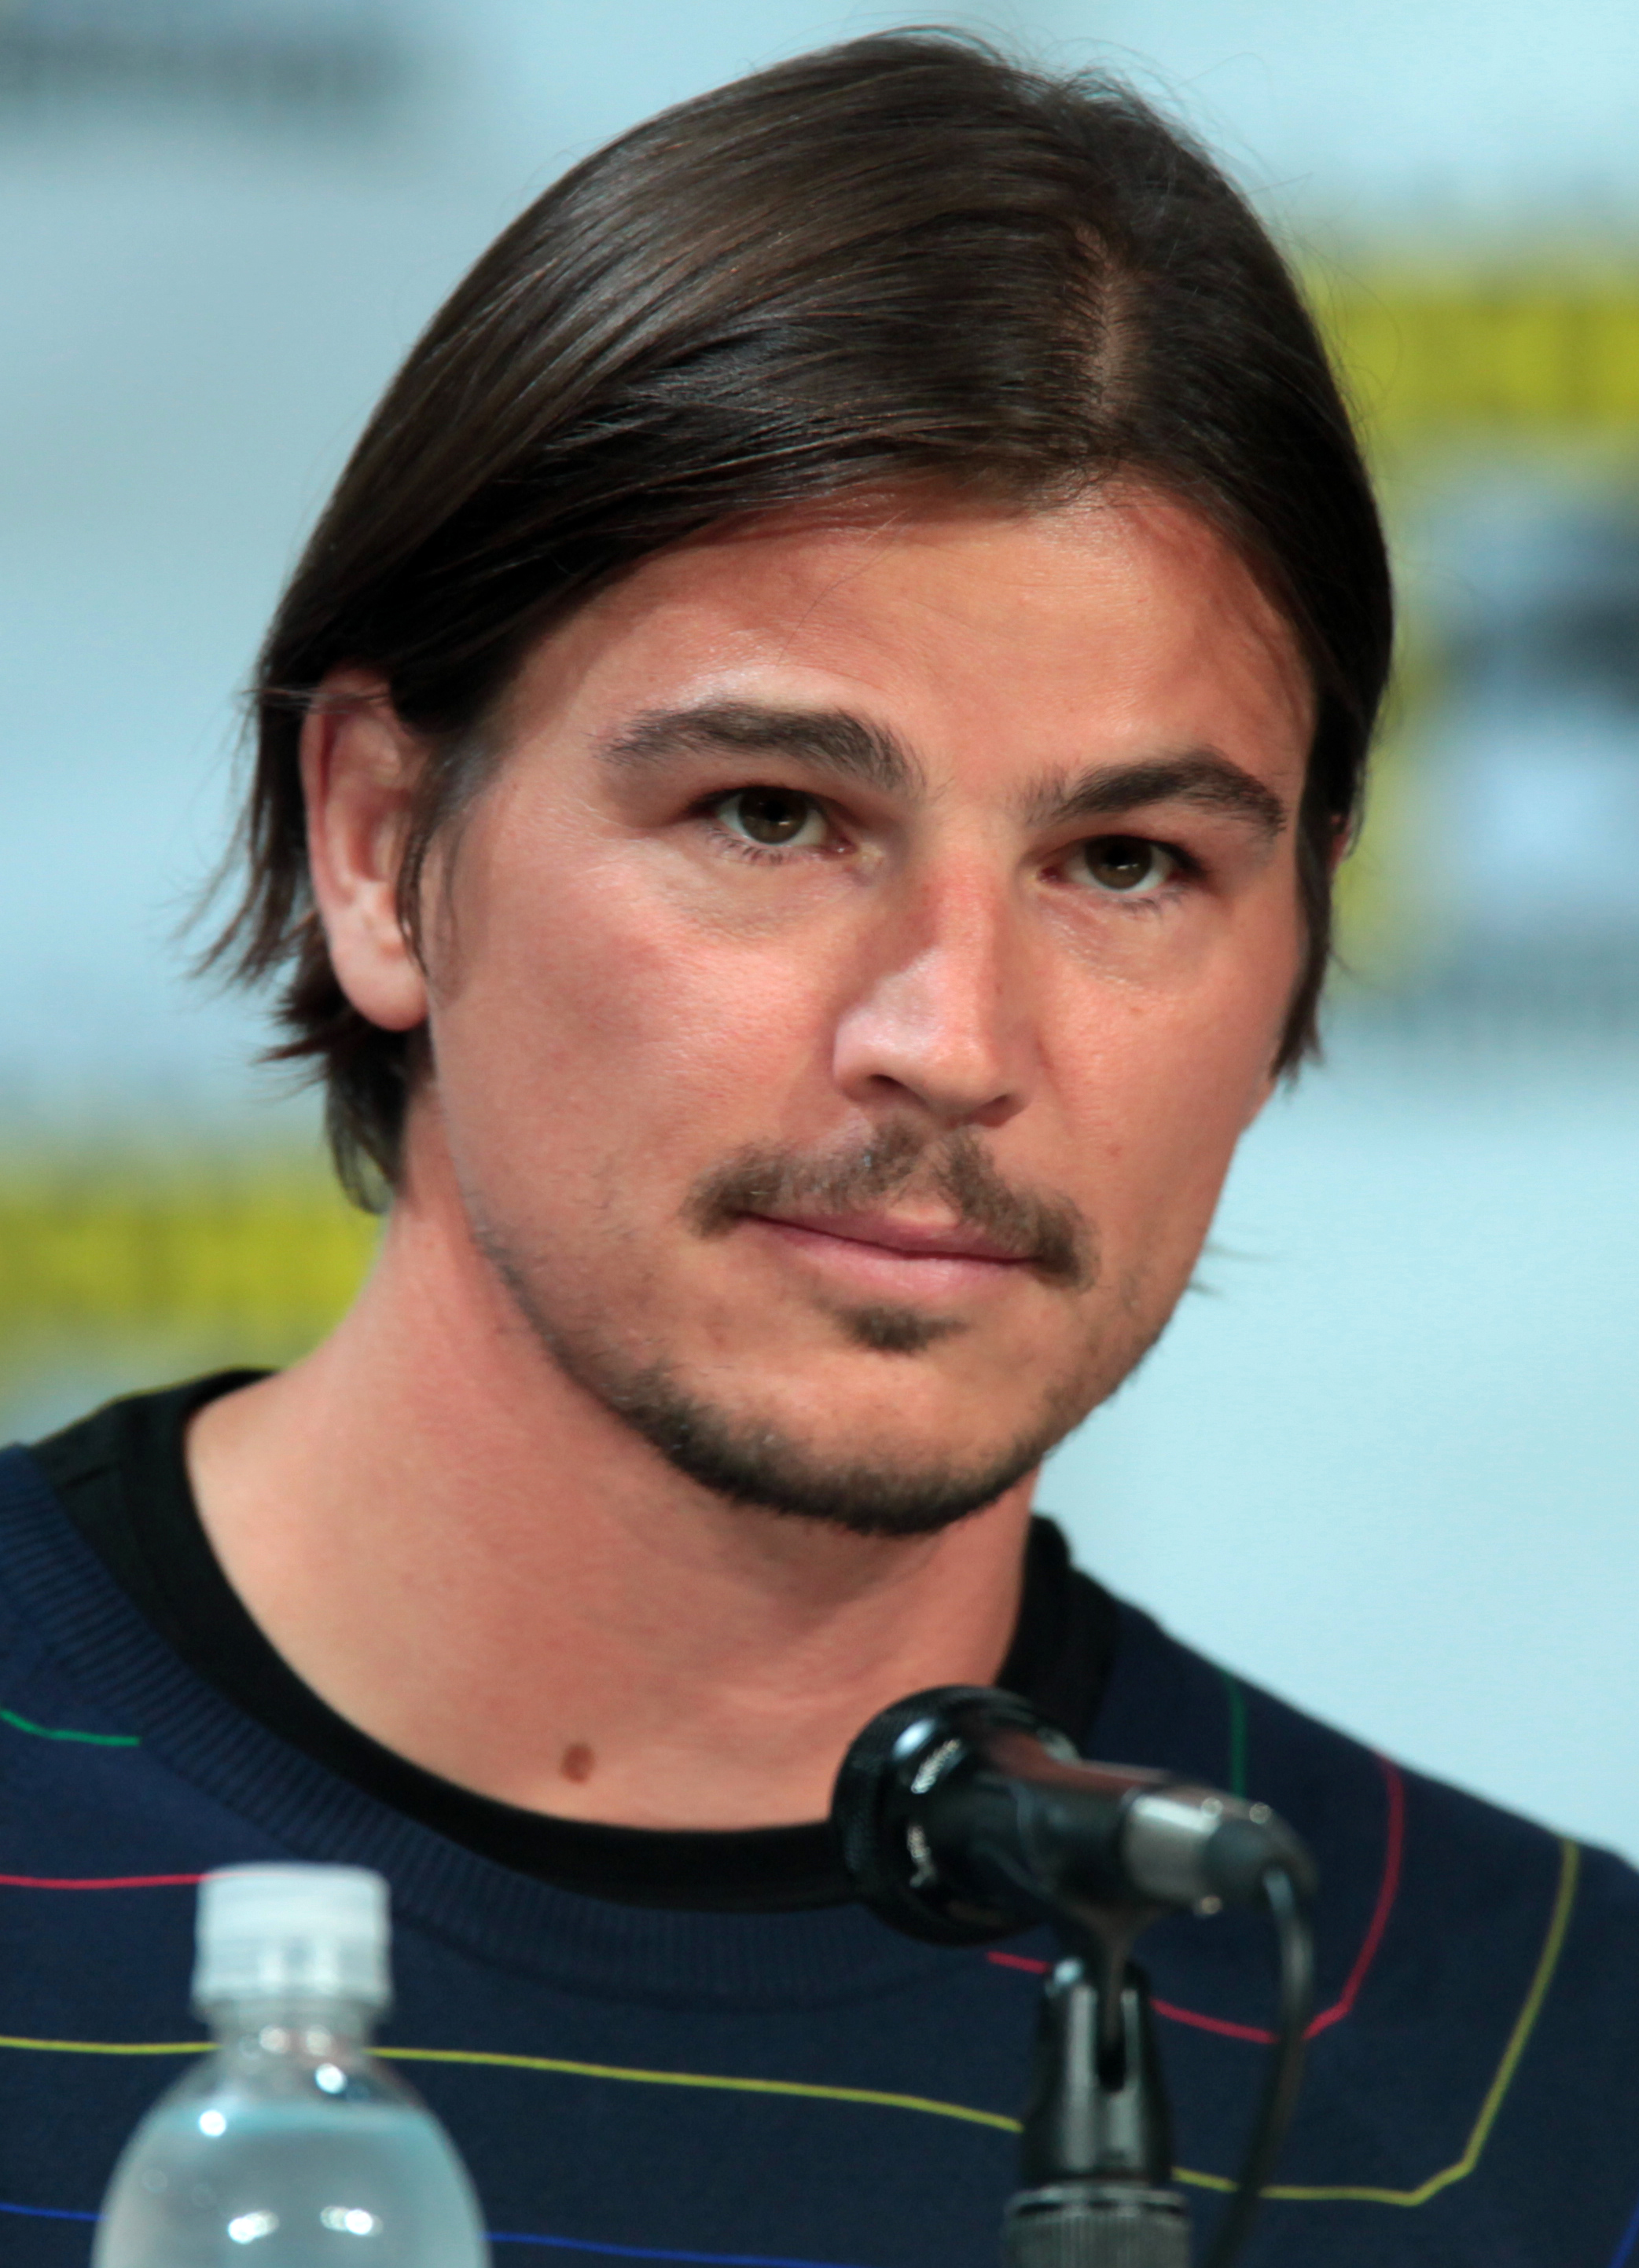 The 40-year old son of father Daniel Hartnett and mother Mother Molly Hartnett Josh Hartnett in 2019 photo. Josh Hartnett earned a  million dollar salary - leaving the net worth at 25 million in 2019